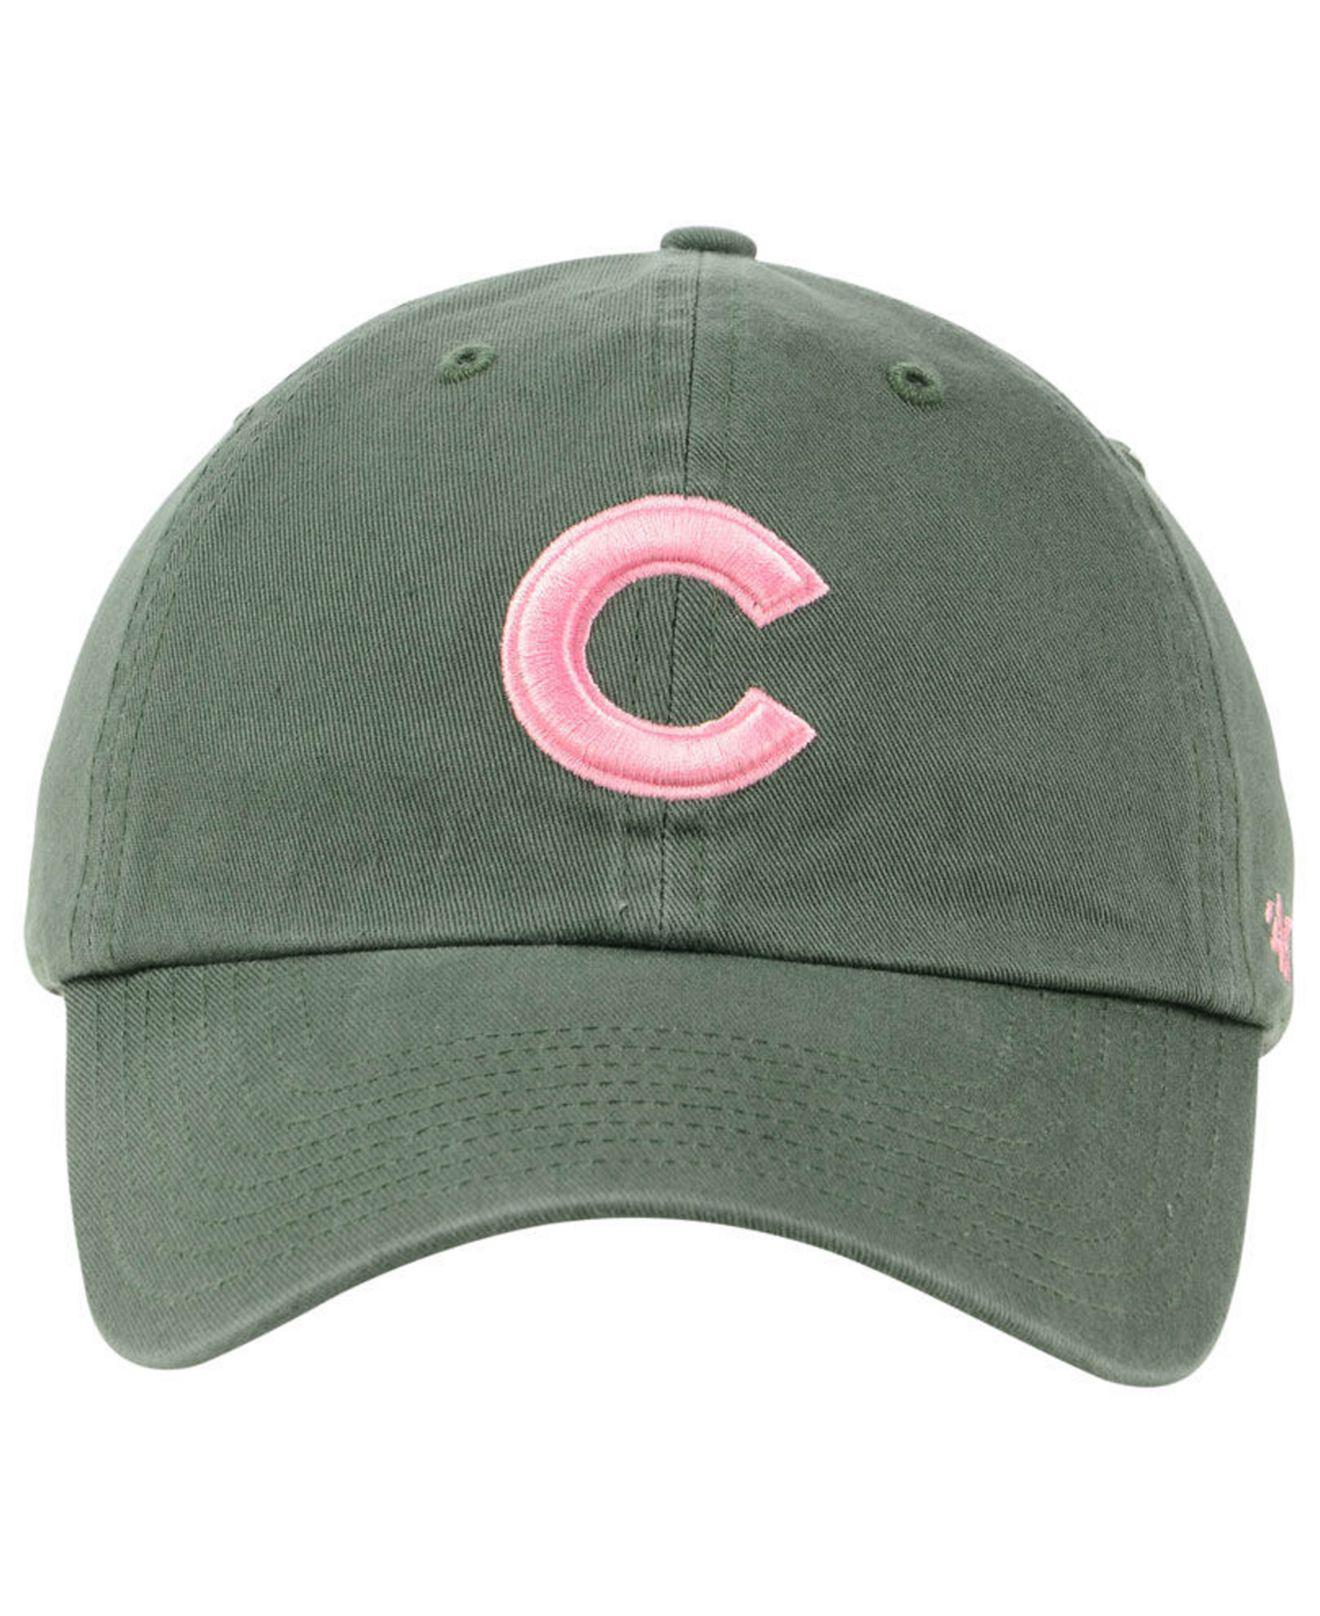 check out d25f1 1a5bc ... clearance lyst 47 brand chicago cubs moss pink clean up cap in green  e080f f5cd2